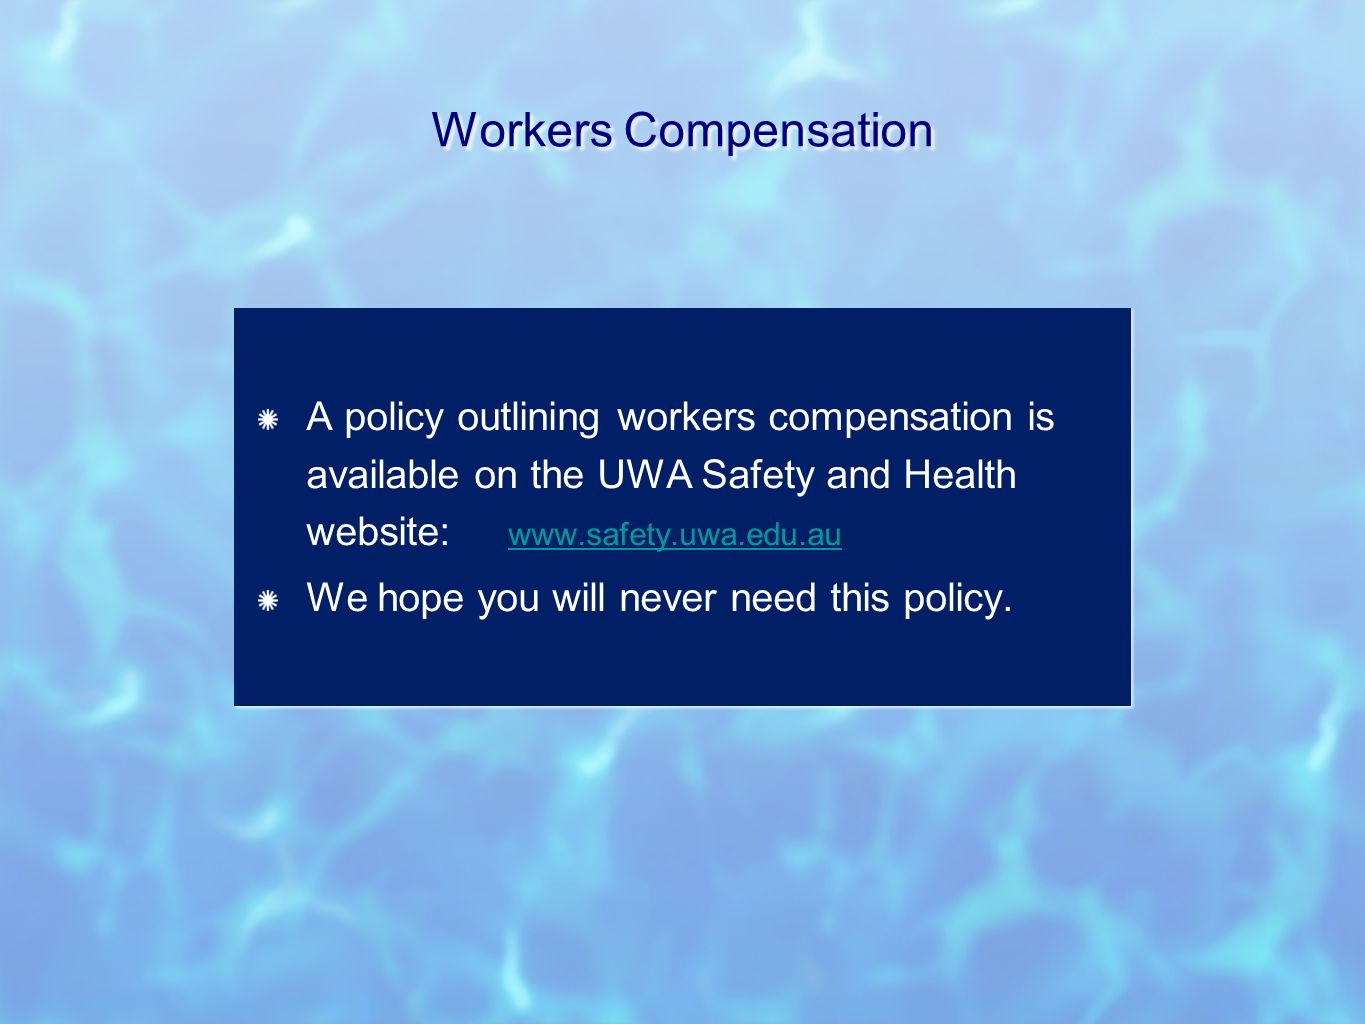 Workers Compensation A policy outlining workers compensation is available on the UWA Safety and Health website: www.safety.uwa.edu.au www.safety.uwa.edu.au We hope you will never need this policy.